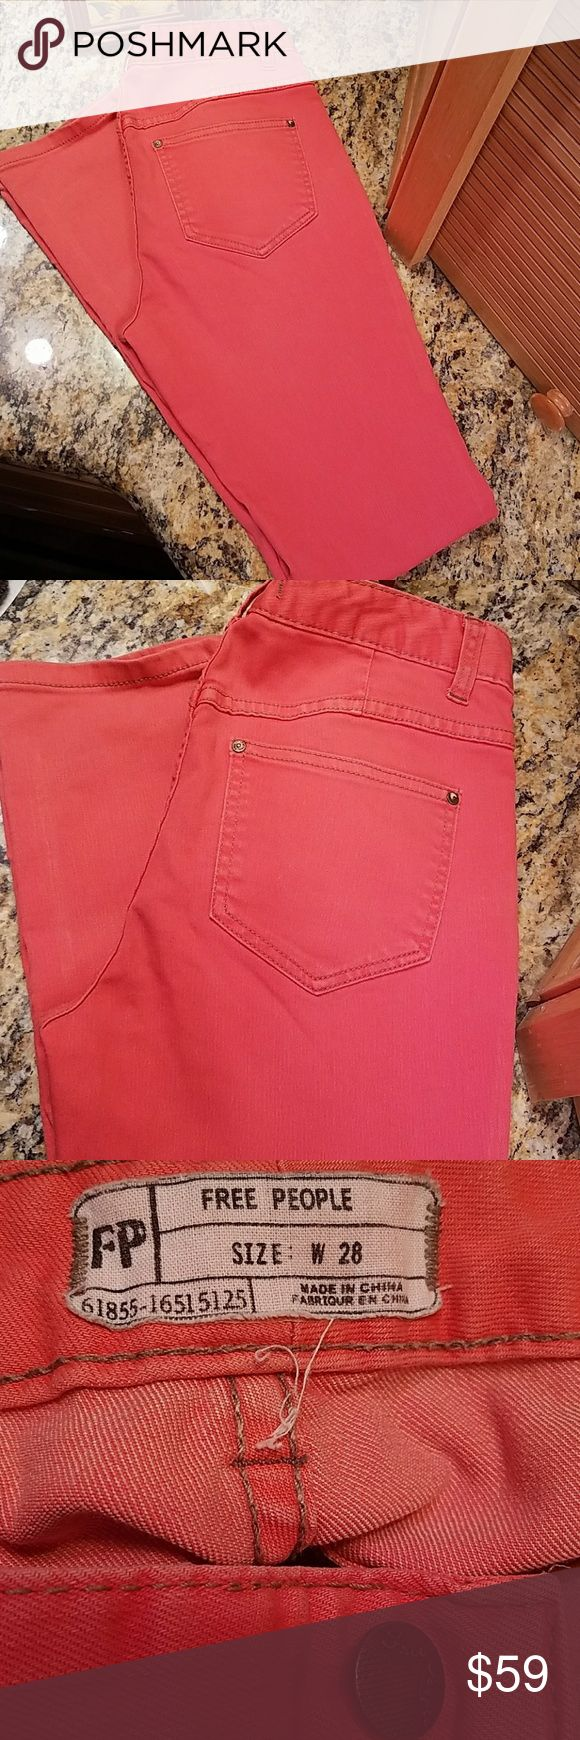 """Free People coral skinny jeans, size 28/31 Free People coral skinny jeans, size 28  ~~measured flat:  inseam 31"""", true waist 15"""", front rise just over 9"""", leg opening 9"""", ankle 6.5""""  ~~some mild distressing, in good condition  ~~i love them but after surgery a year ago, likely not get back into them. sigh.   Offers welcome  ♡♡Or add to a bundle for a private no obligation offer from me via dressing room  ☆Non smokers tho we do have pets so a stray hair might transfer. Items are stored away…"""